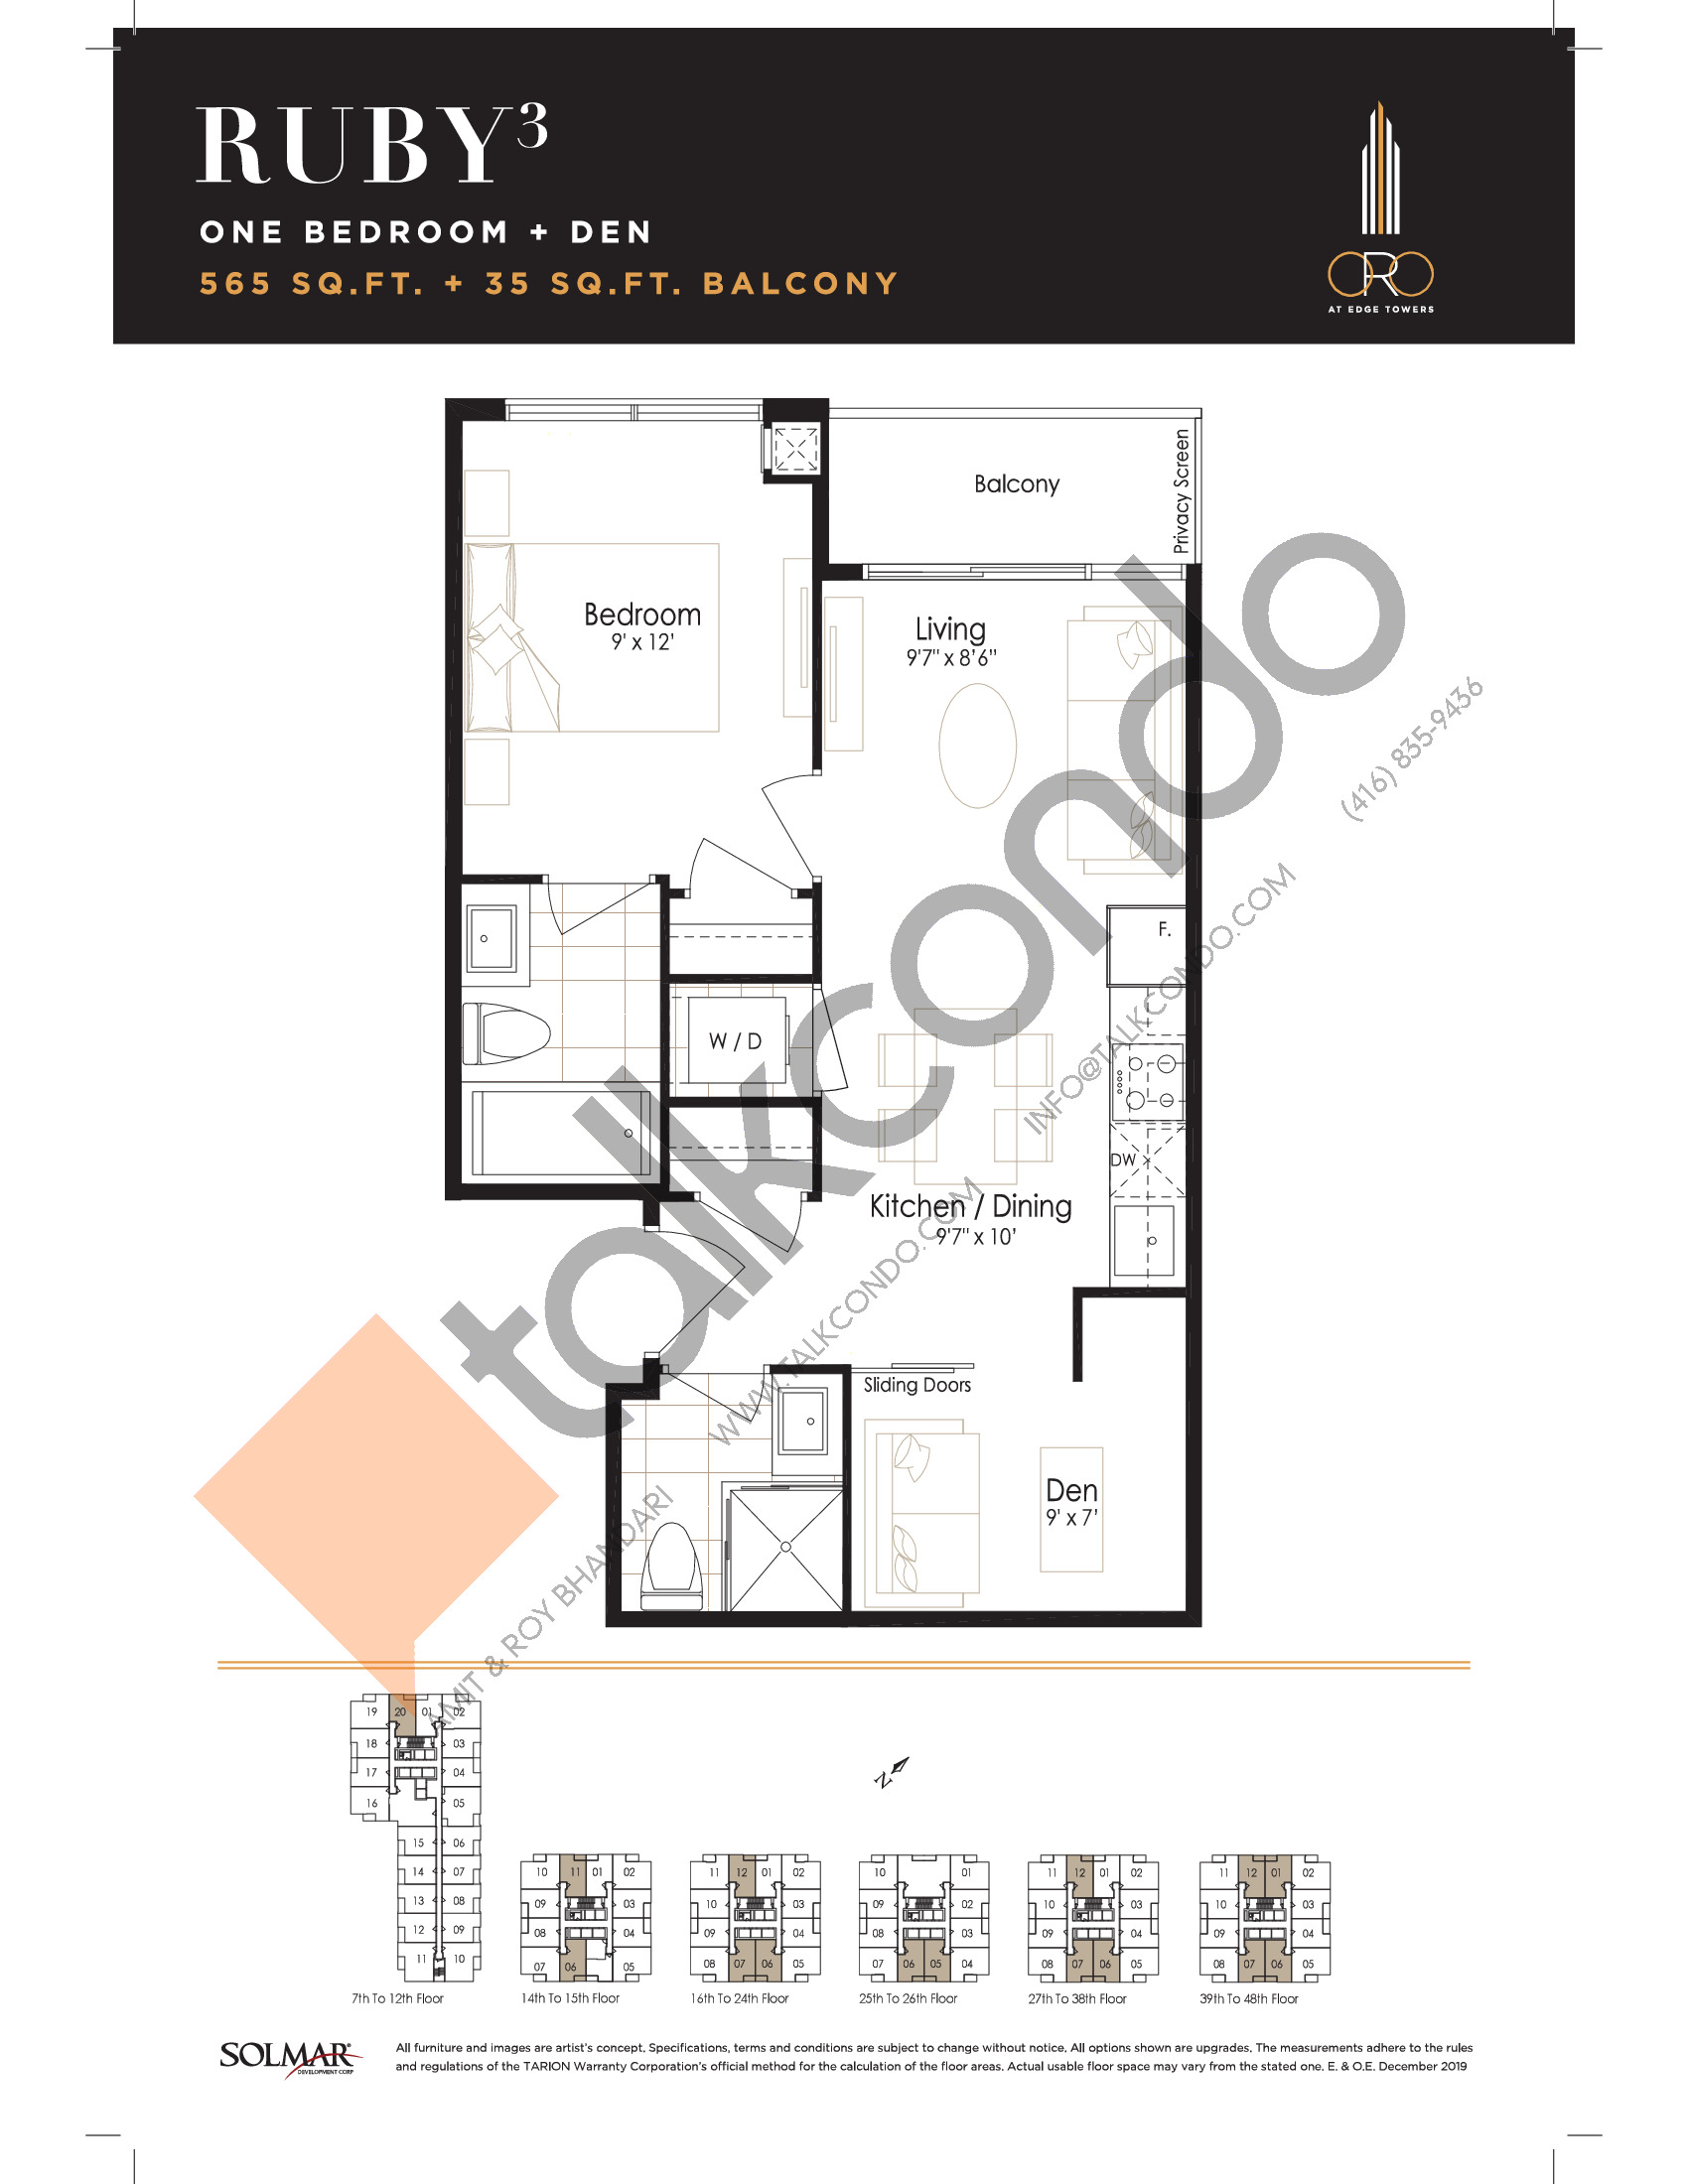 Ruby Floor Plan at ORO at Edge Towers Condos - 565 sq.ft